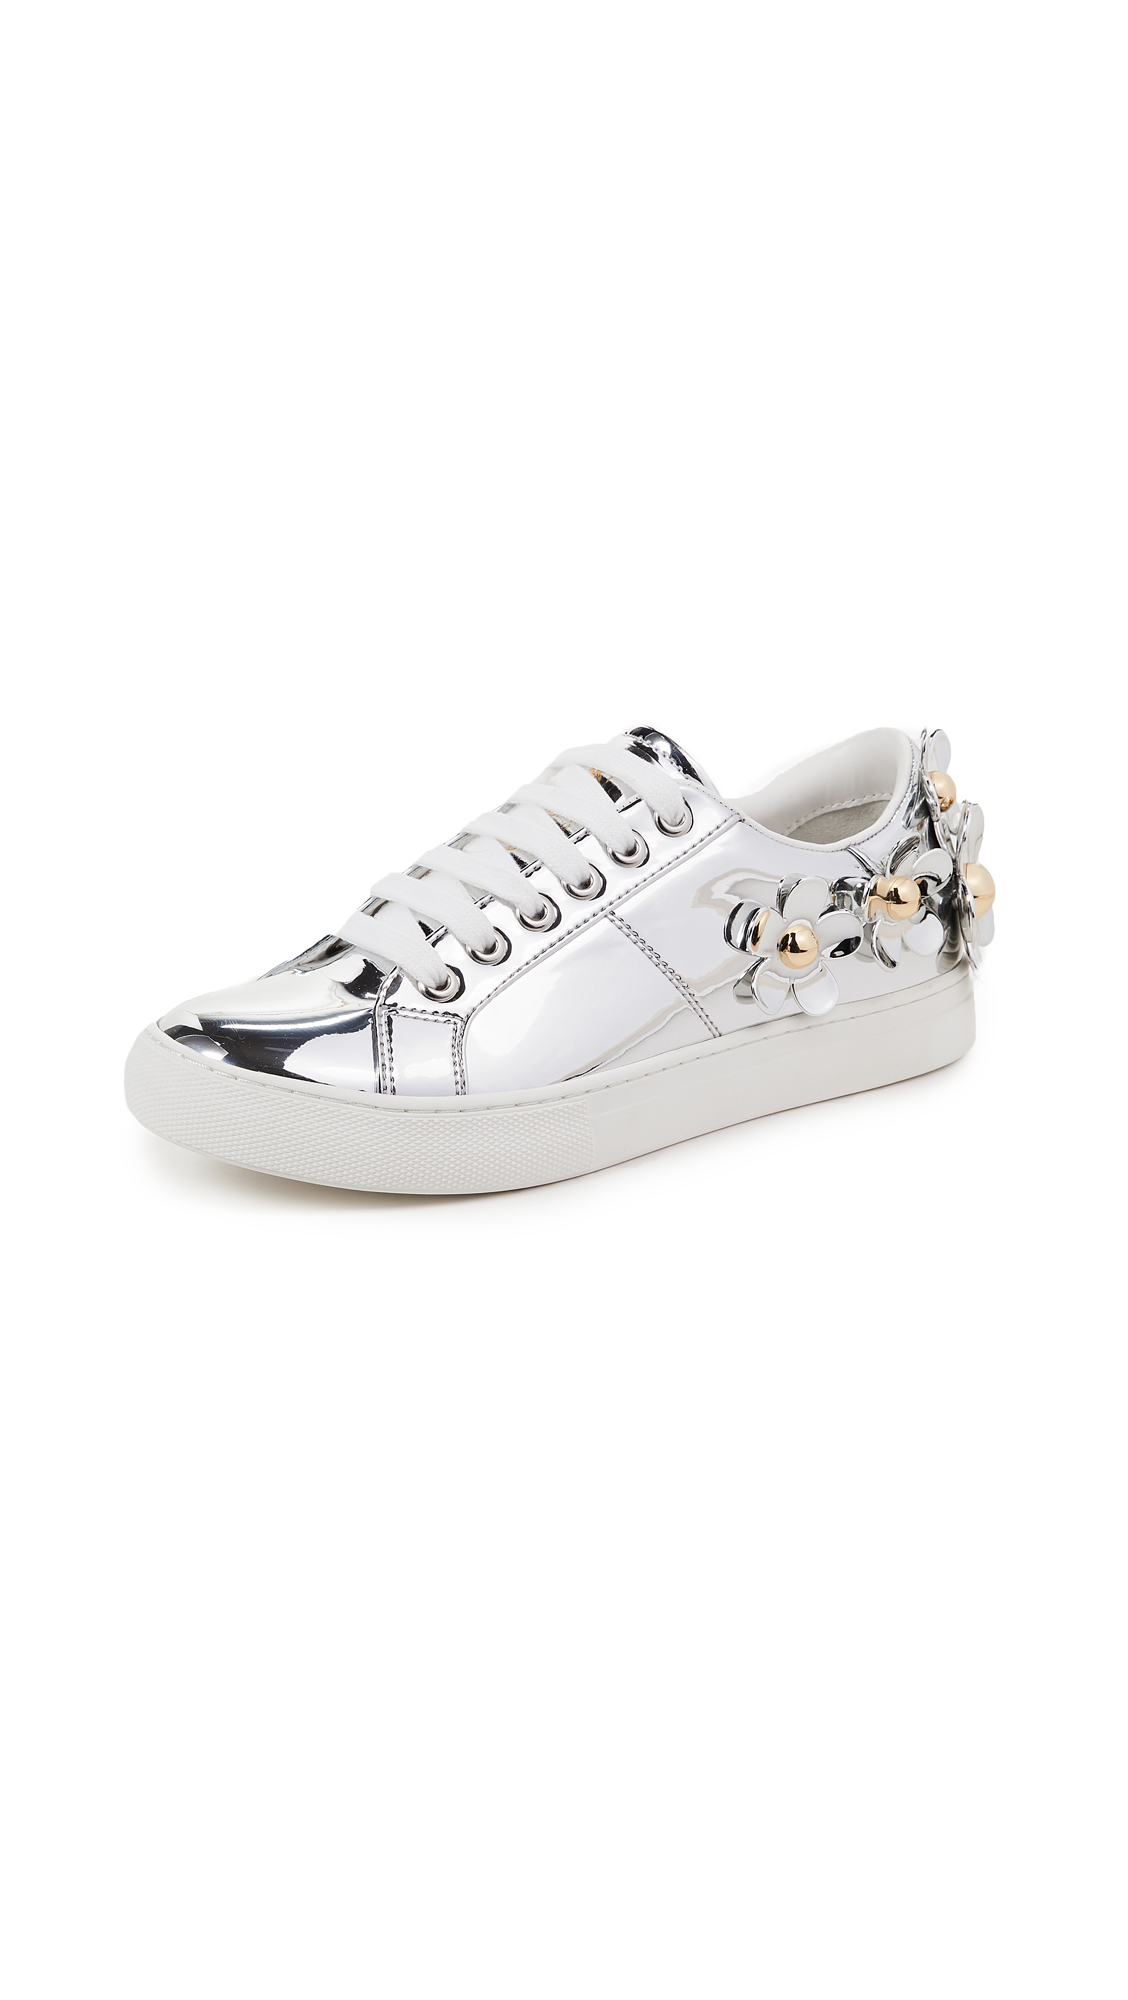 Marc Jacobs Daisy Sneakers - Silver